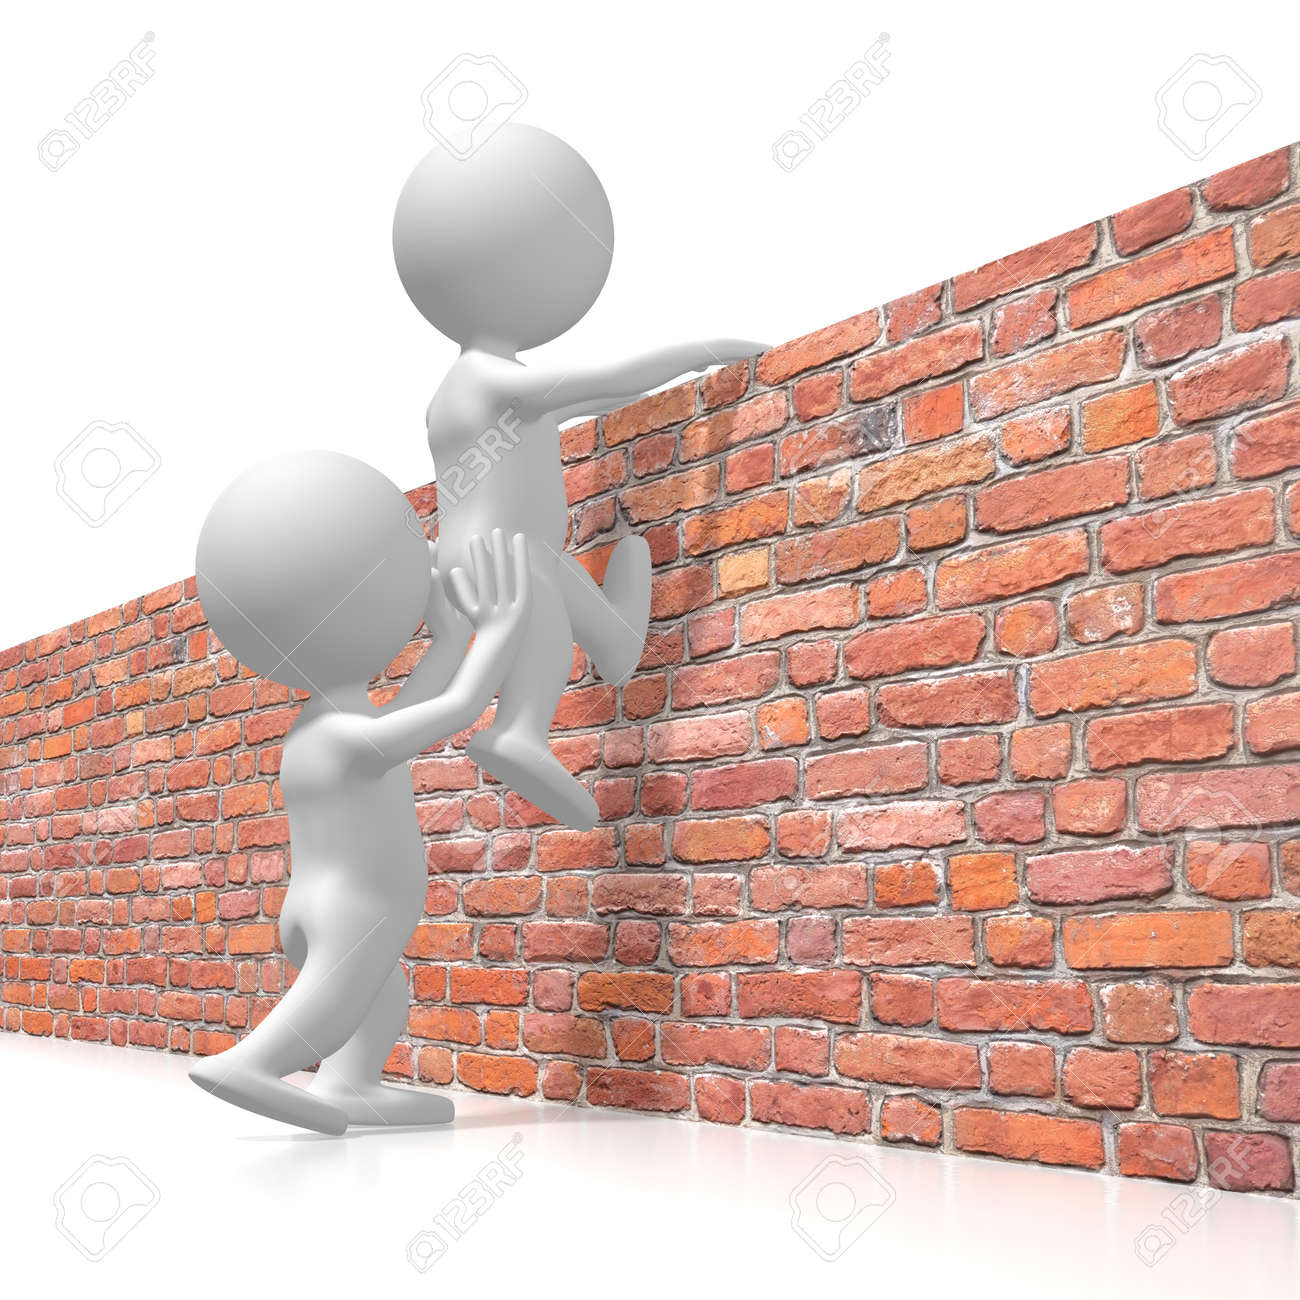 Helping getting over the wall concept - 110066083